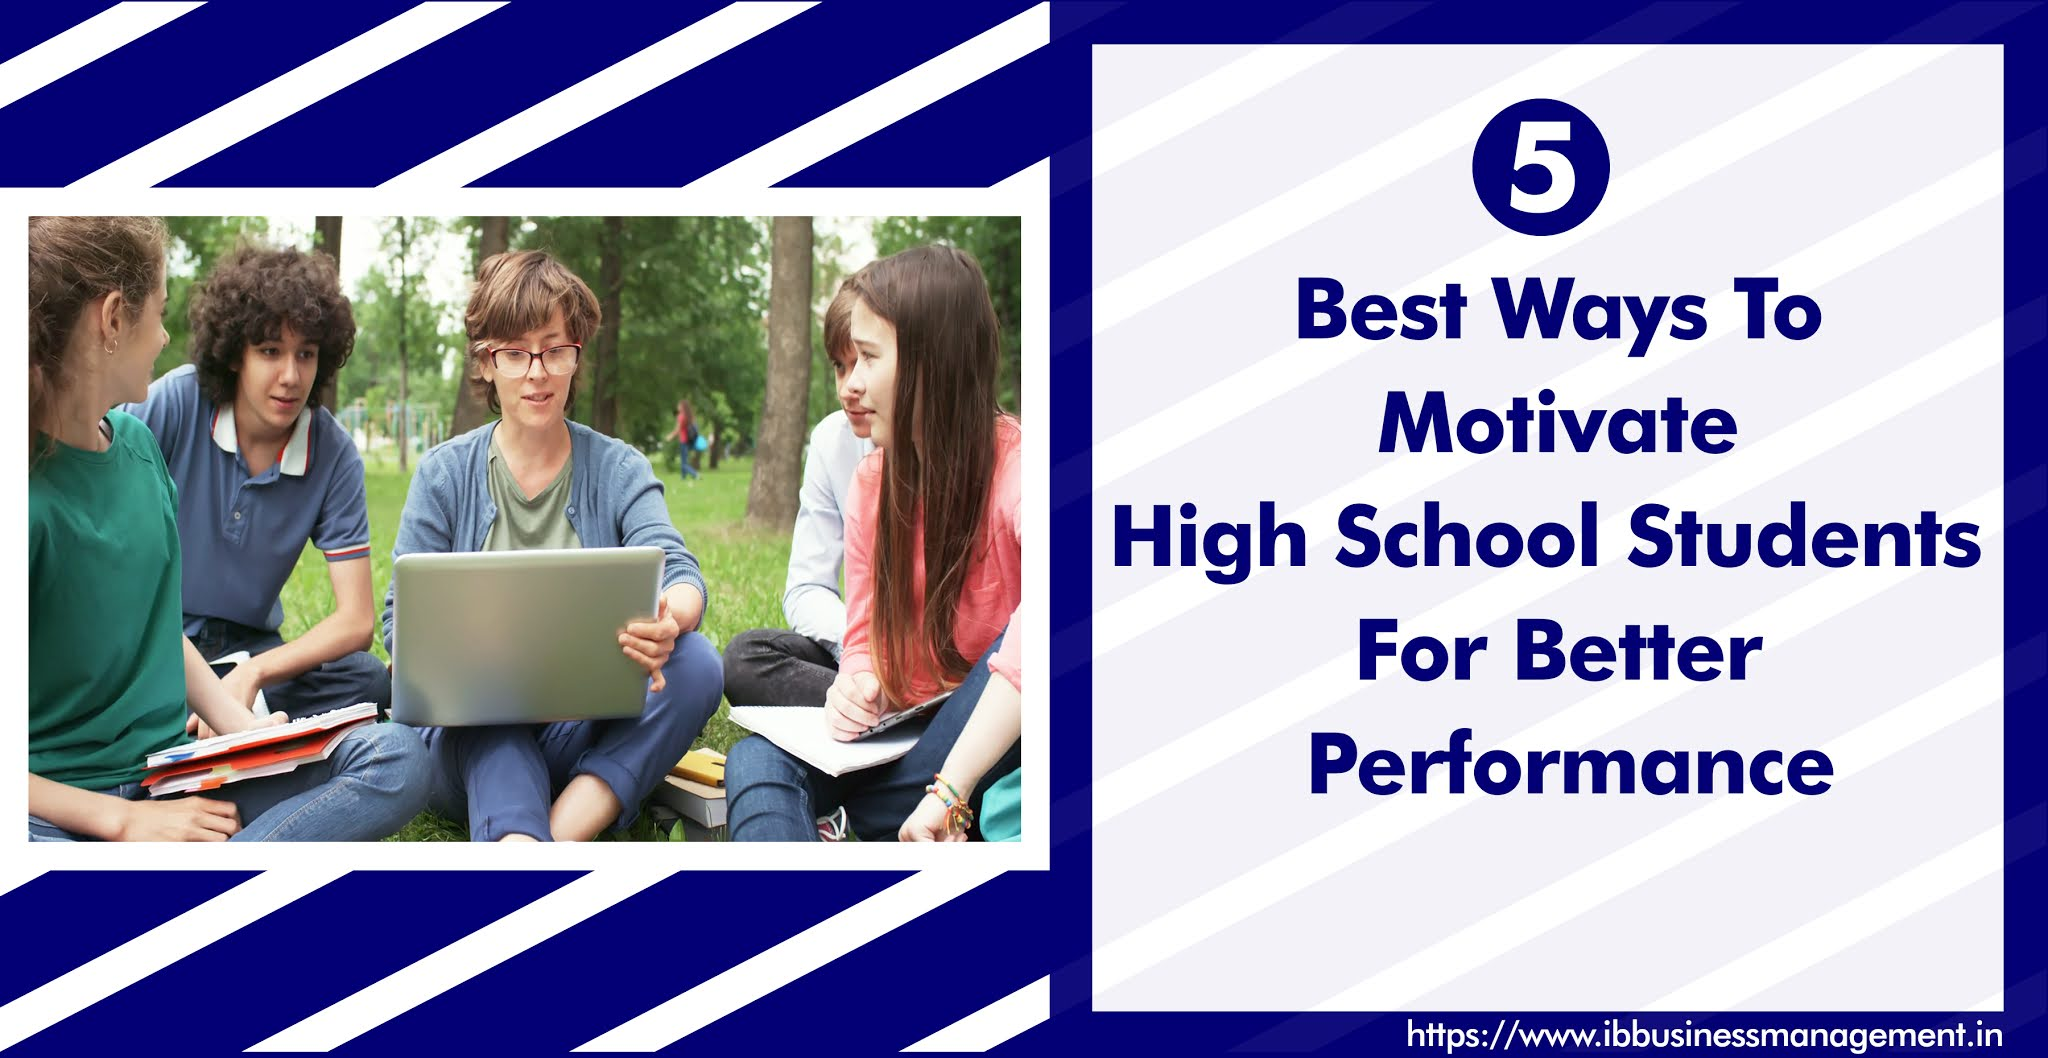 5 Best Ways To Motivate High School Students For Better Performance